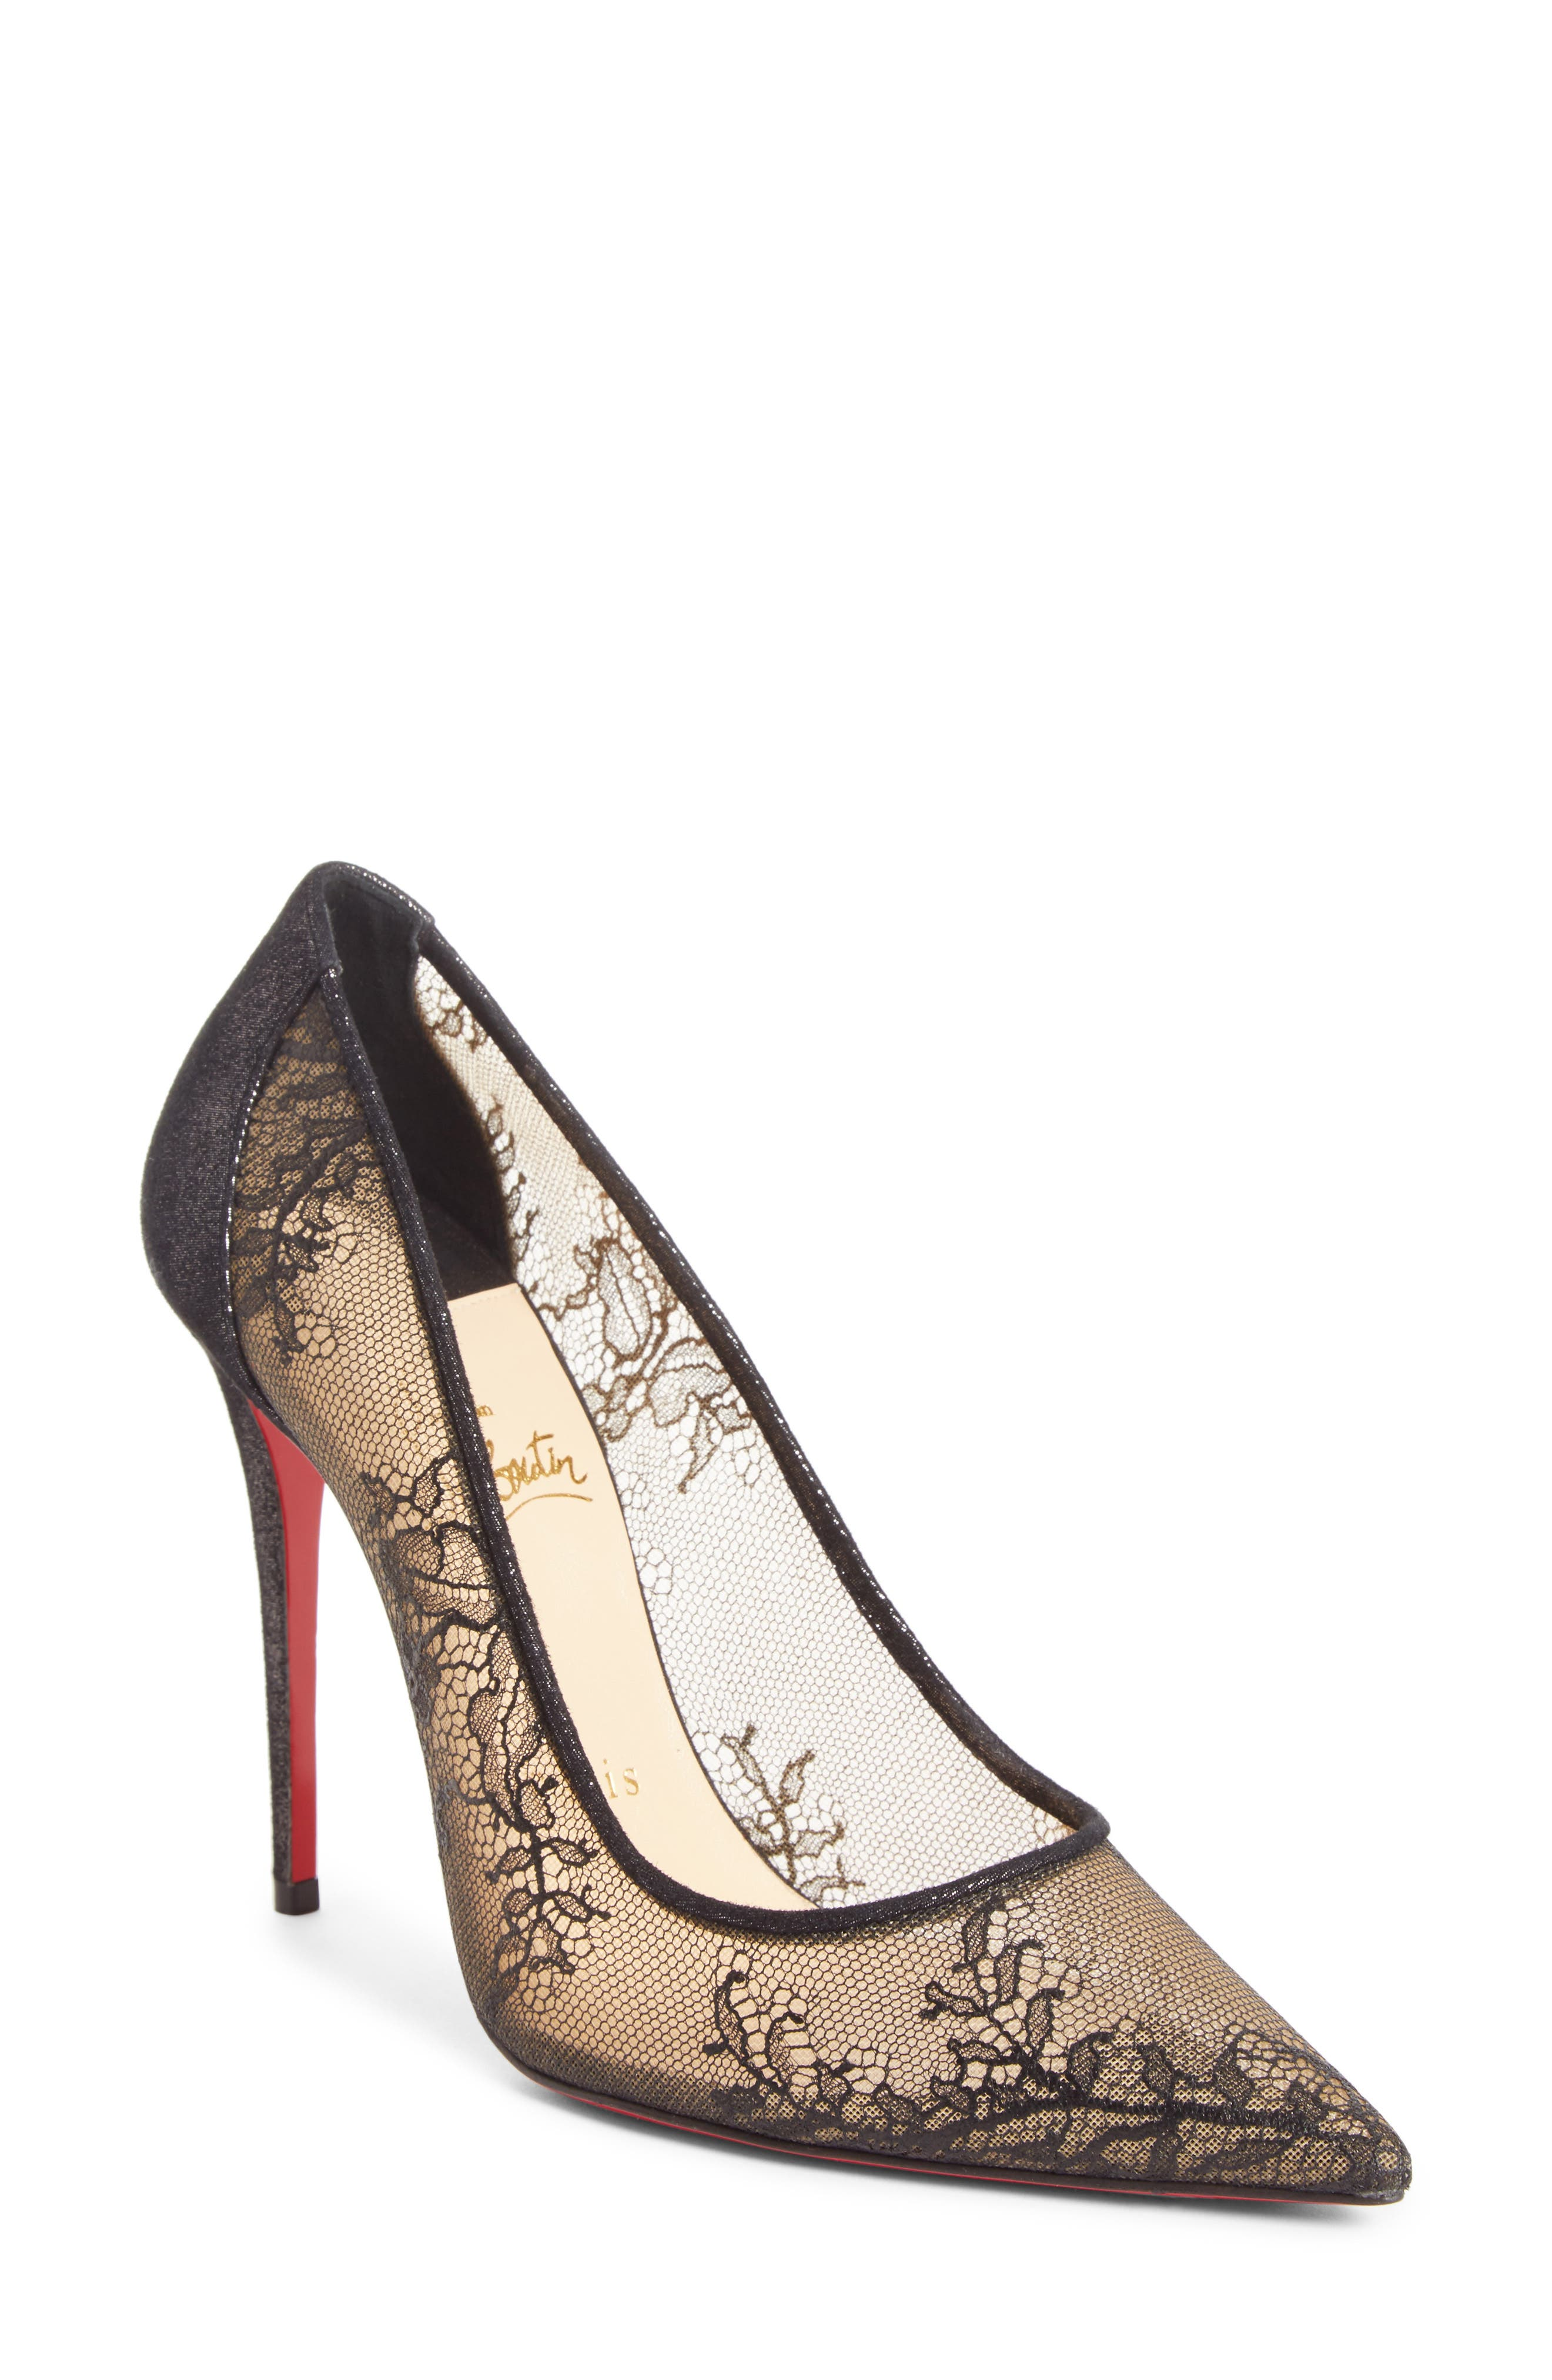 Christian Louboutin Floral Lace Pointy Toe Pump (Women)